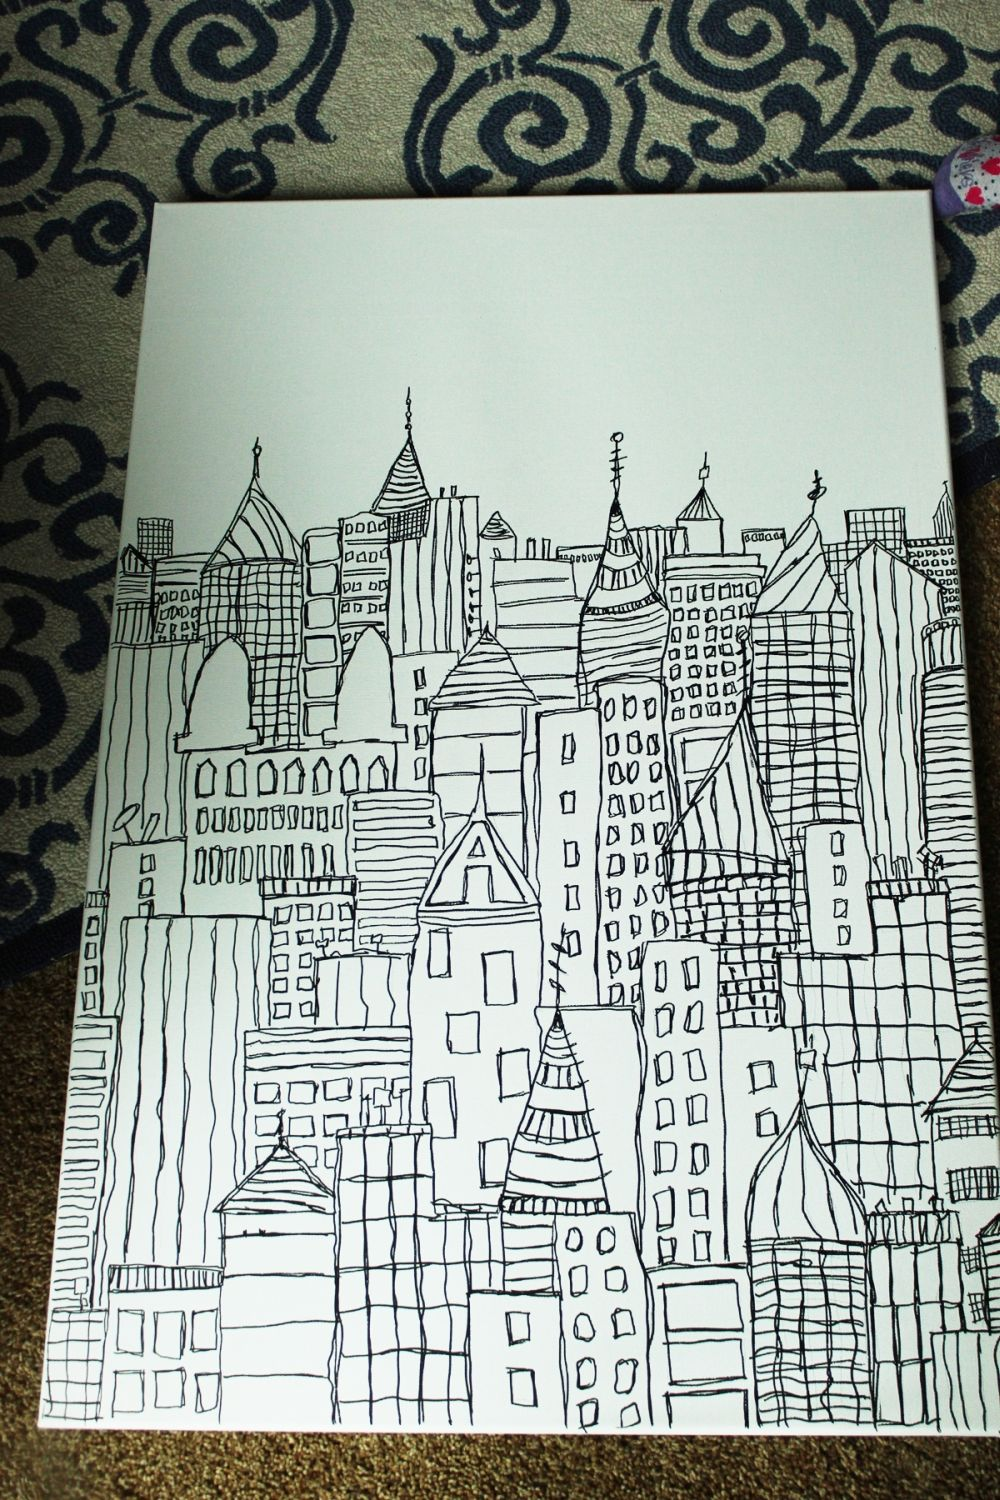 Coloring Christmas Lights With Sharpie DIY Art Cityscape Sketch On Canvas